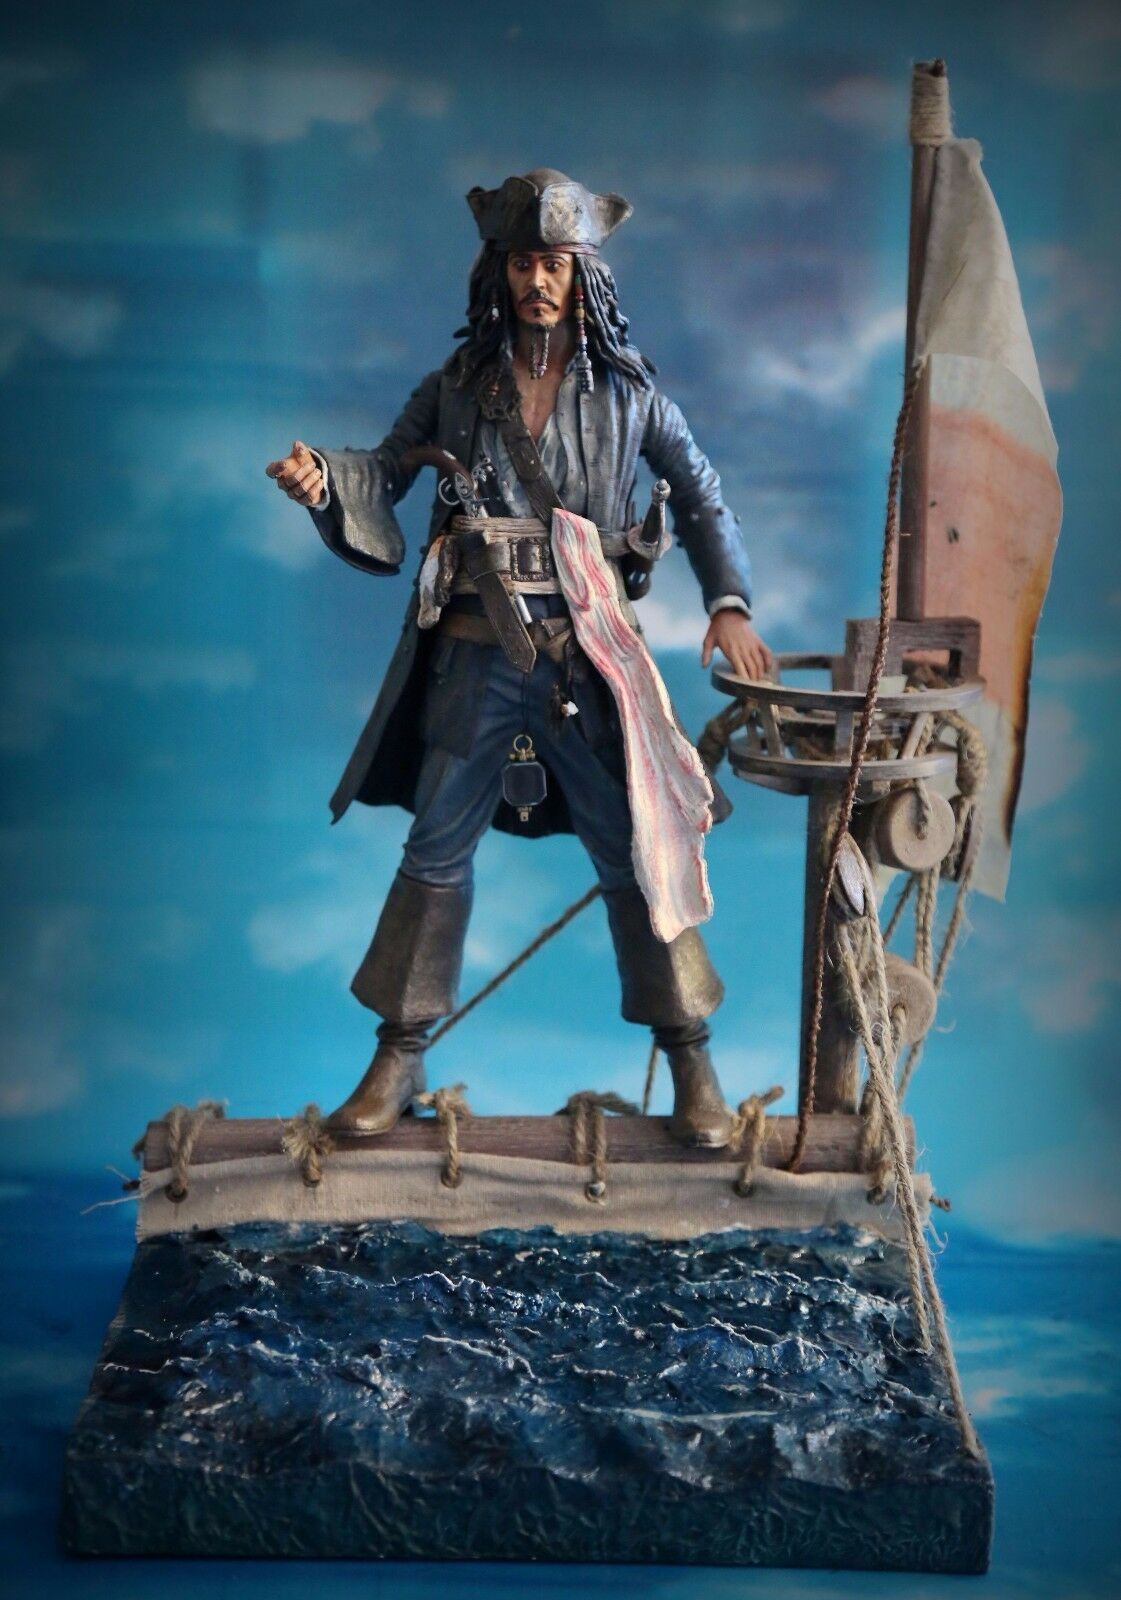 1 6 Scale Scene Pirates of the Caribbean Scene B